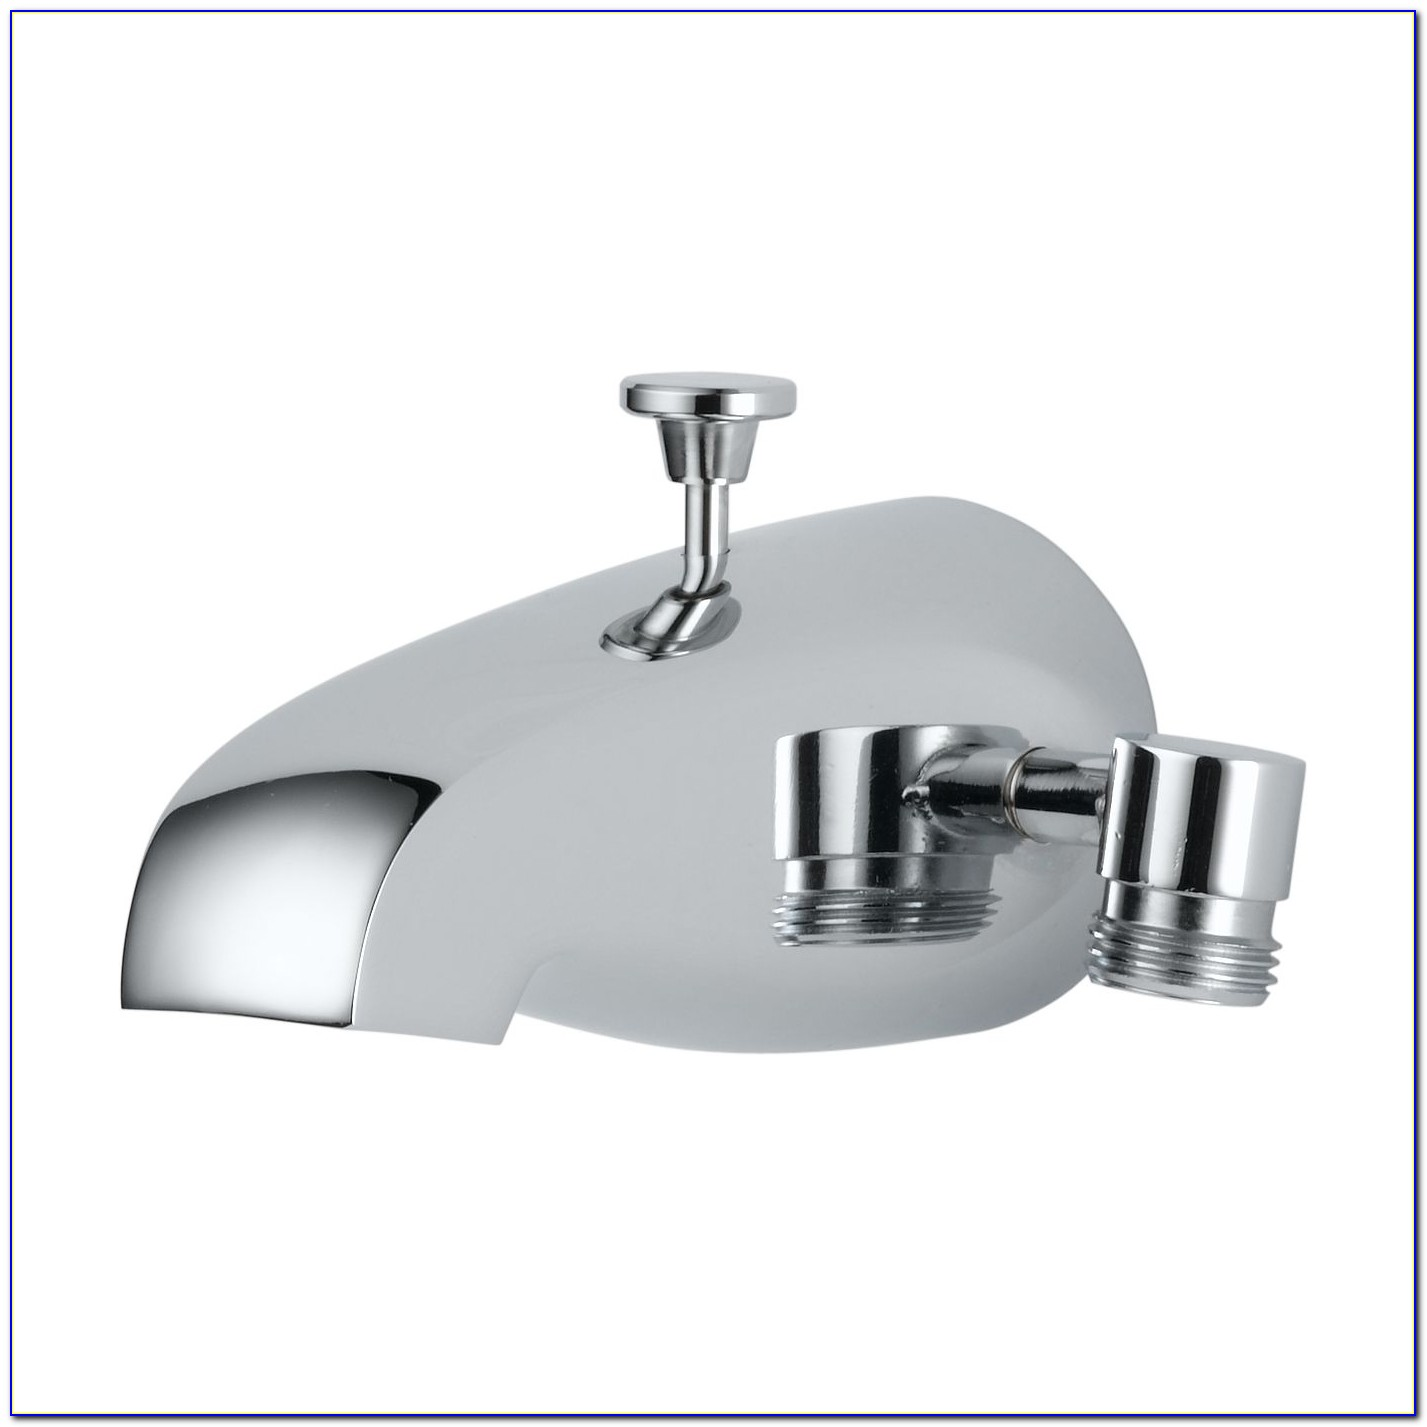 Rv Bathtub Faucet With Diverter